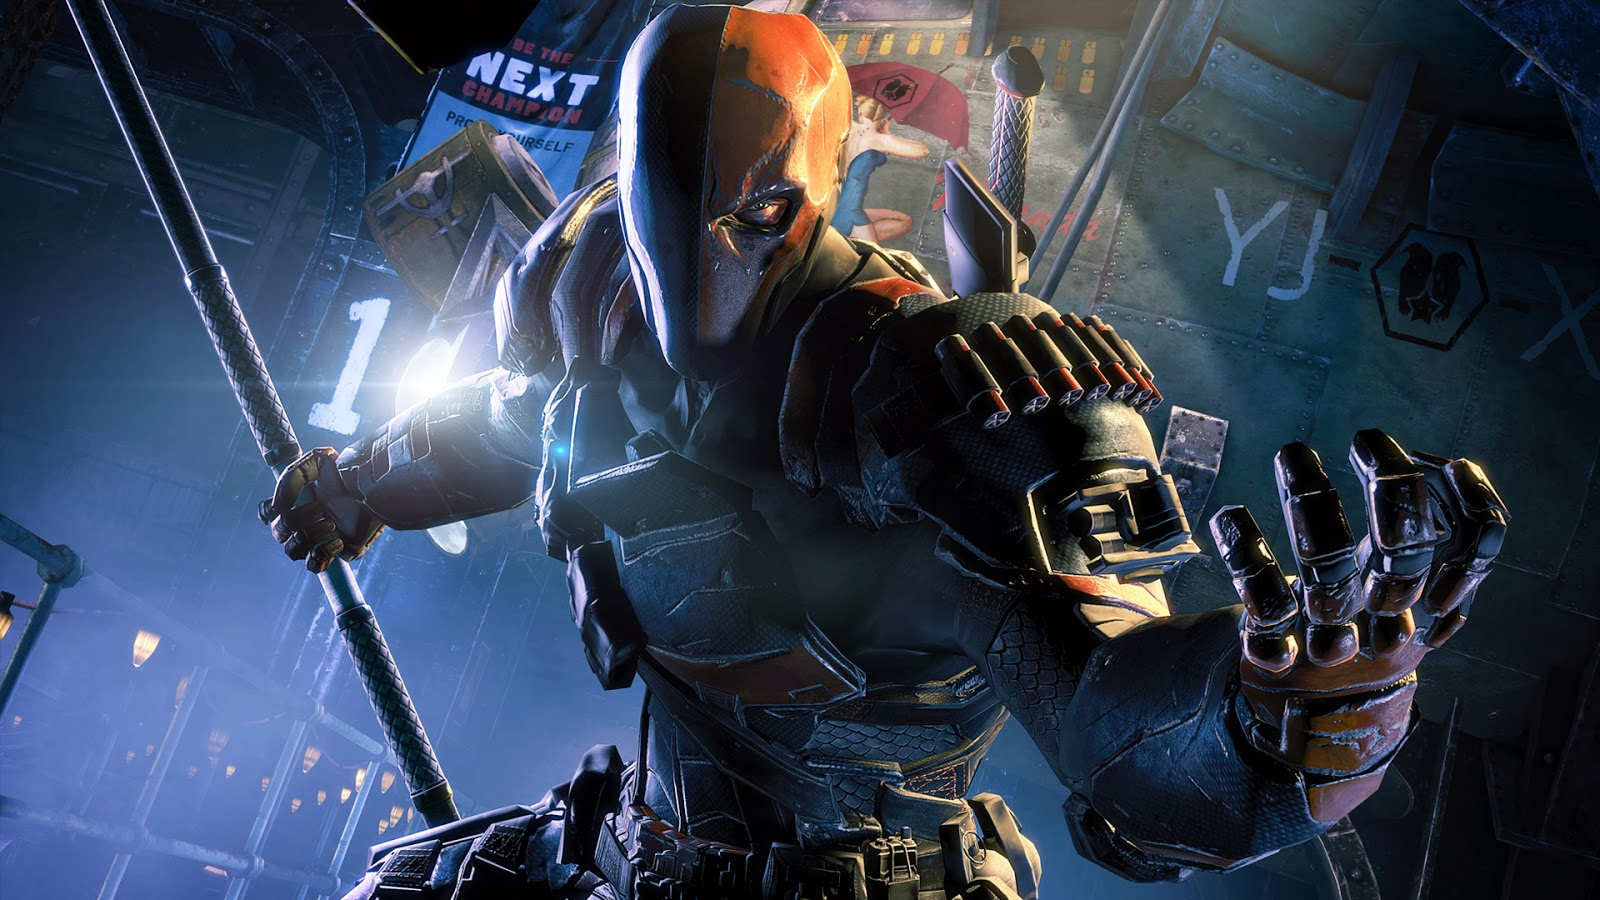 Deathstroke Batman Arkham Origins Wallpaper HiresMOVIEWALLcom 1600x900